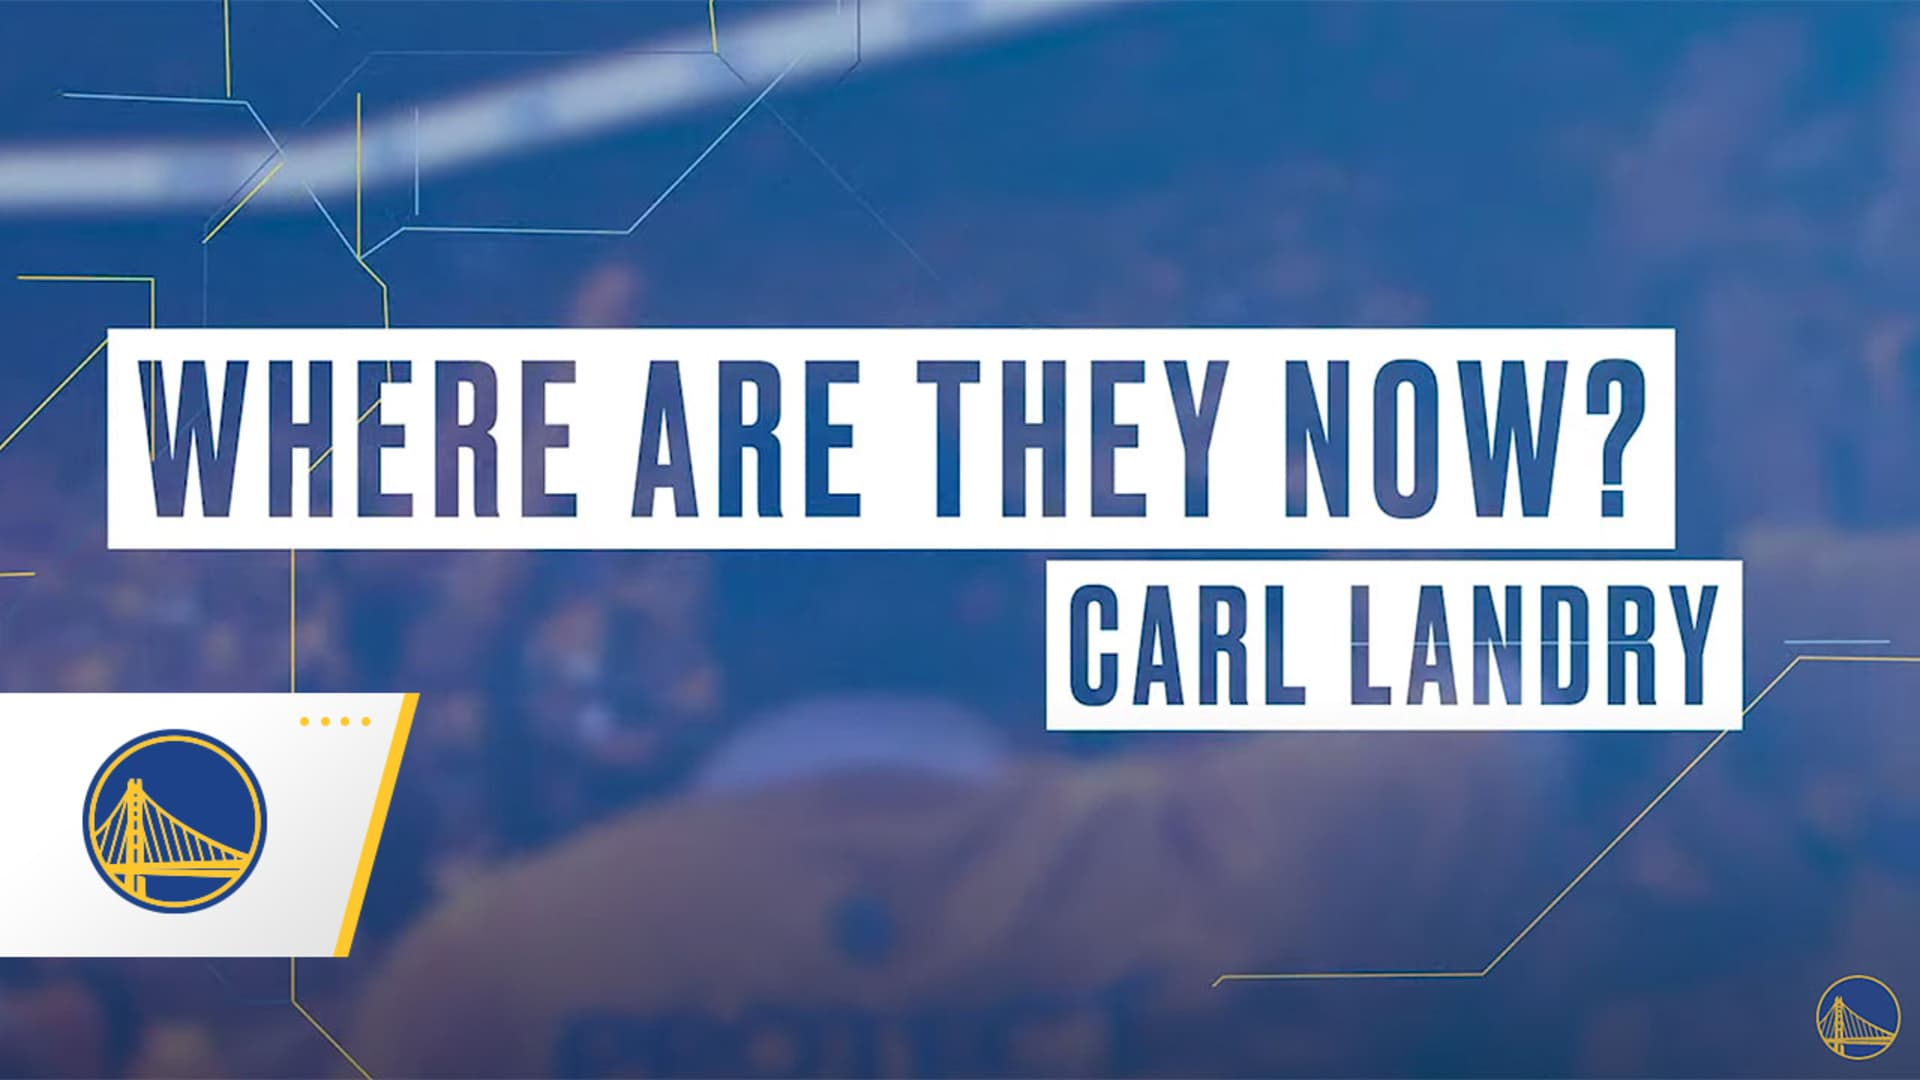 Where Are They Now featuring Carl Landry, Presented by Pepsi